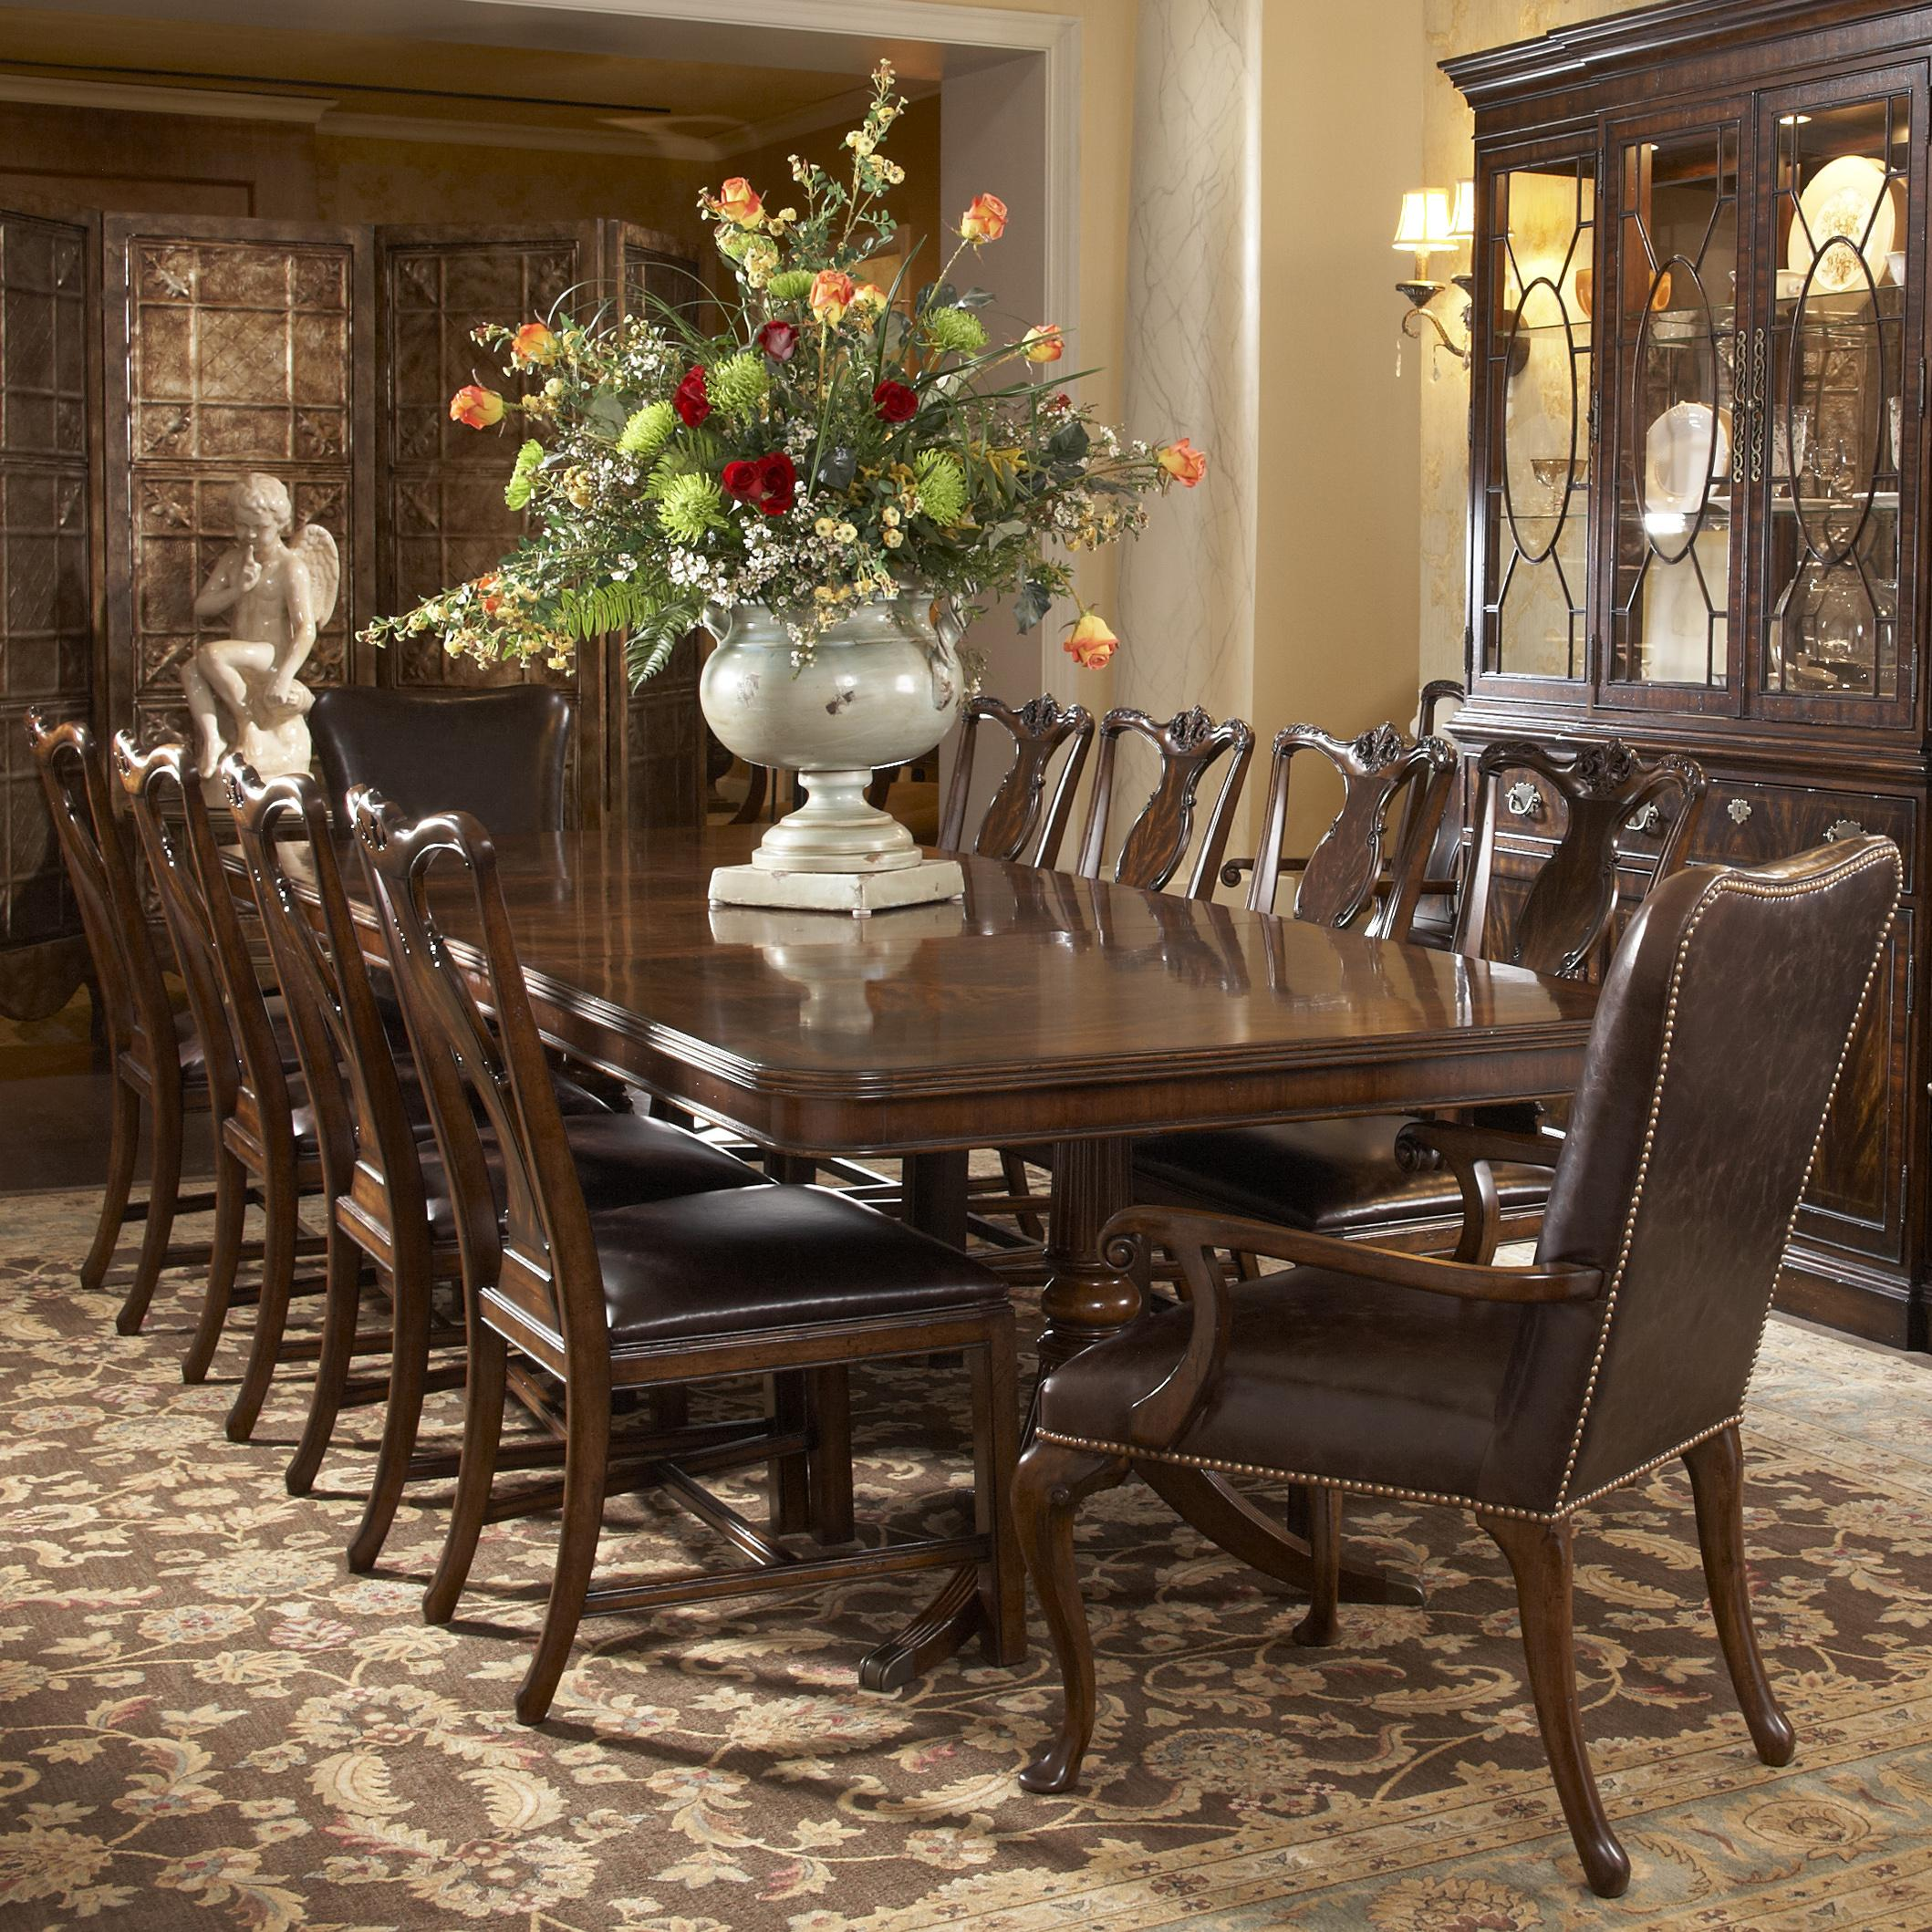 Table And Chairs Set 11 Piece Dining Room Set Homesfeed